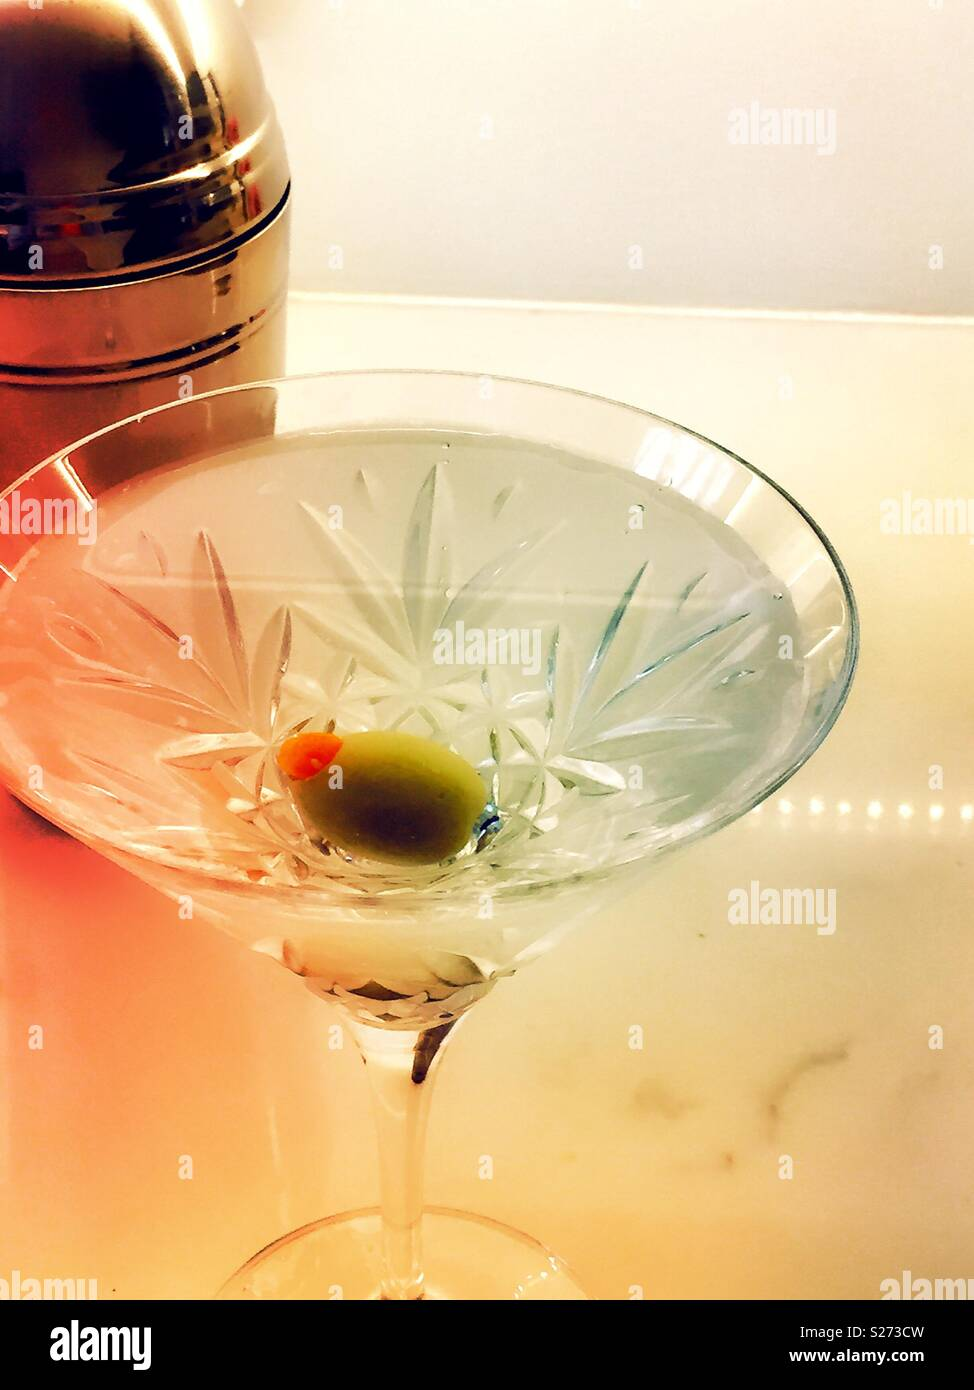 The classic dry gin martini with Spanish Olive  in Waterford crystal martini glass, USA - Stock Image